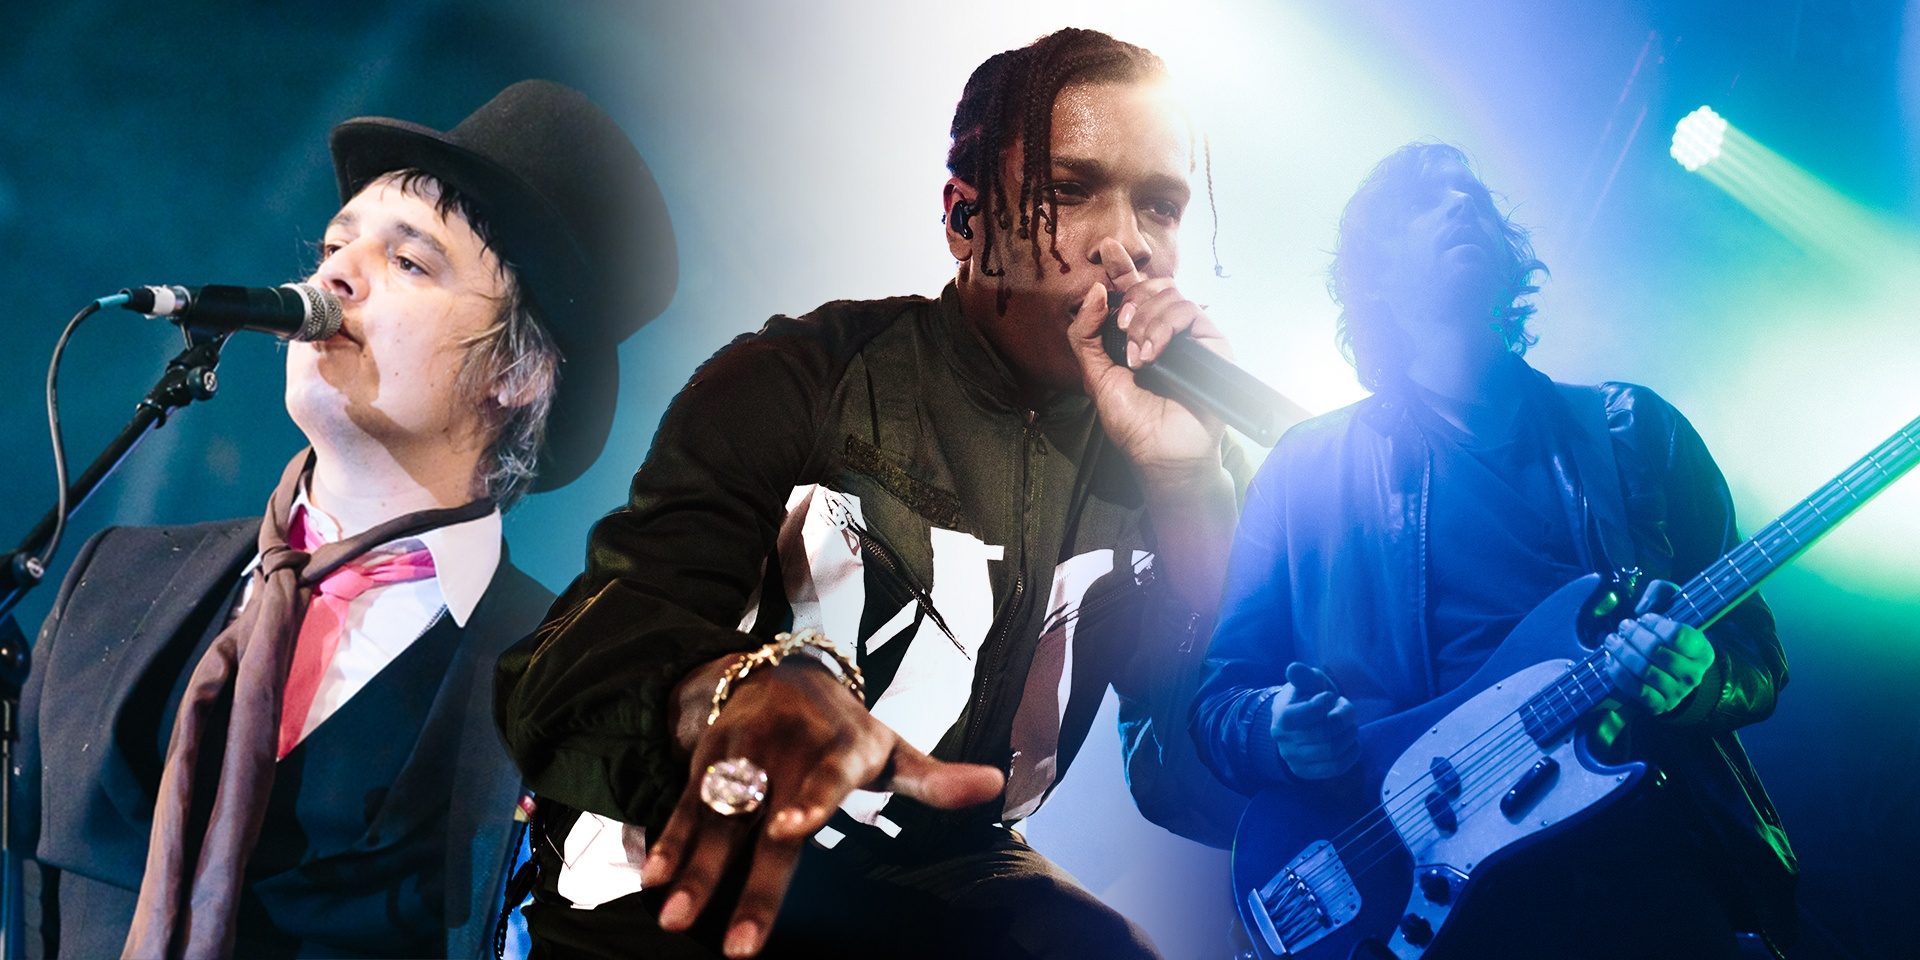 PHOTO GALLERY: Clockenflap 2015 Day 2 — The Libertines, A$AP Rocky, Ratatat, Angel Haze & More